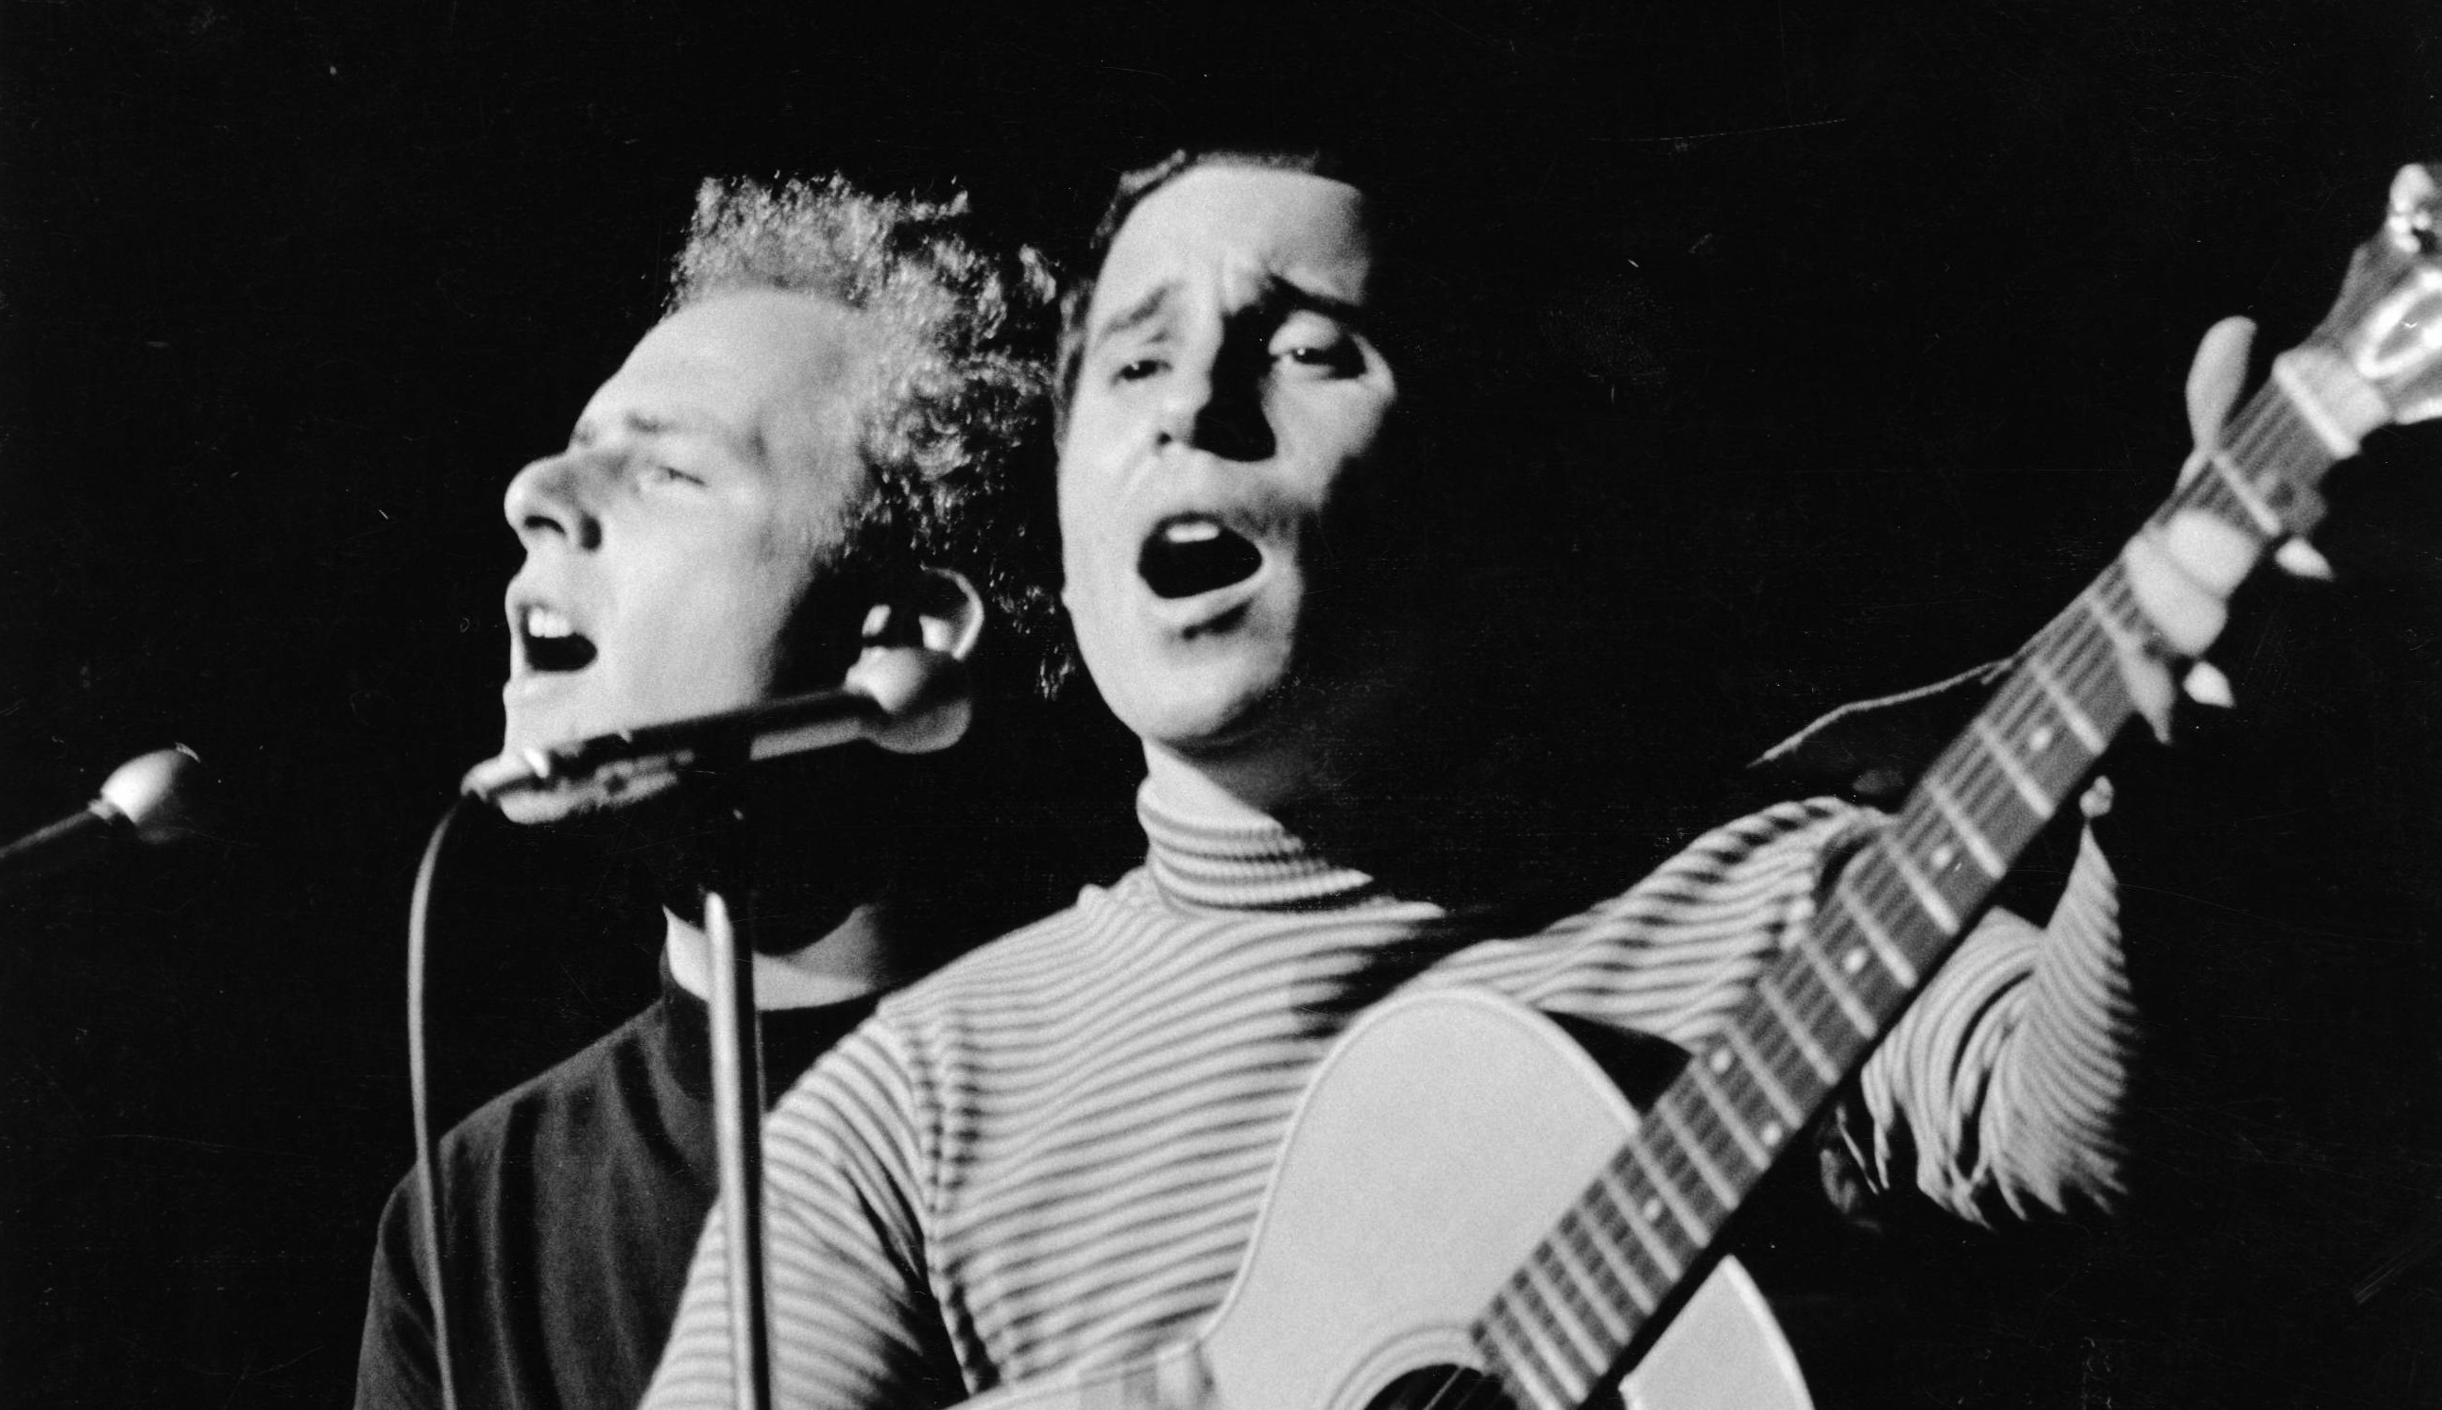 The beautiful music by Simon & Garfunkel still resonates.